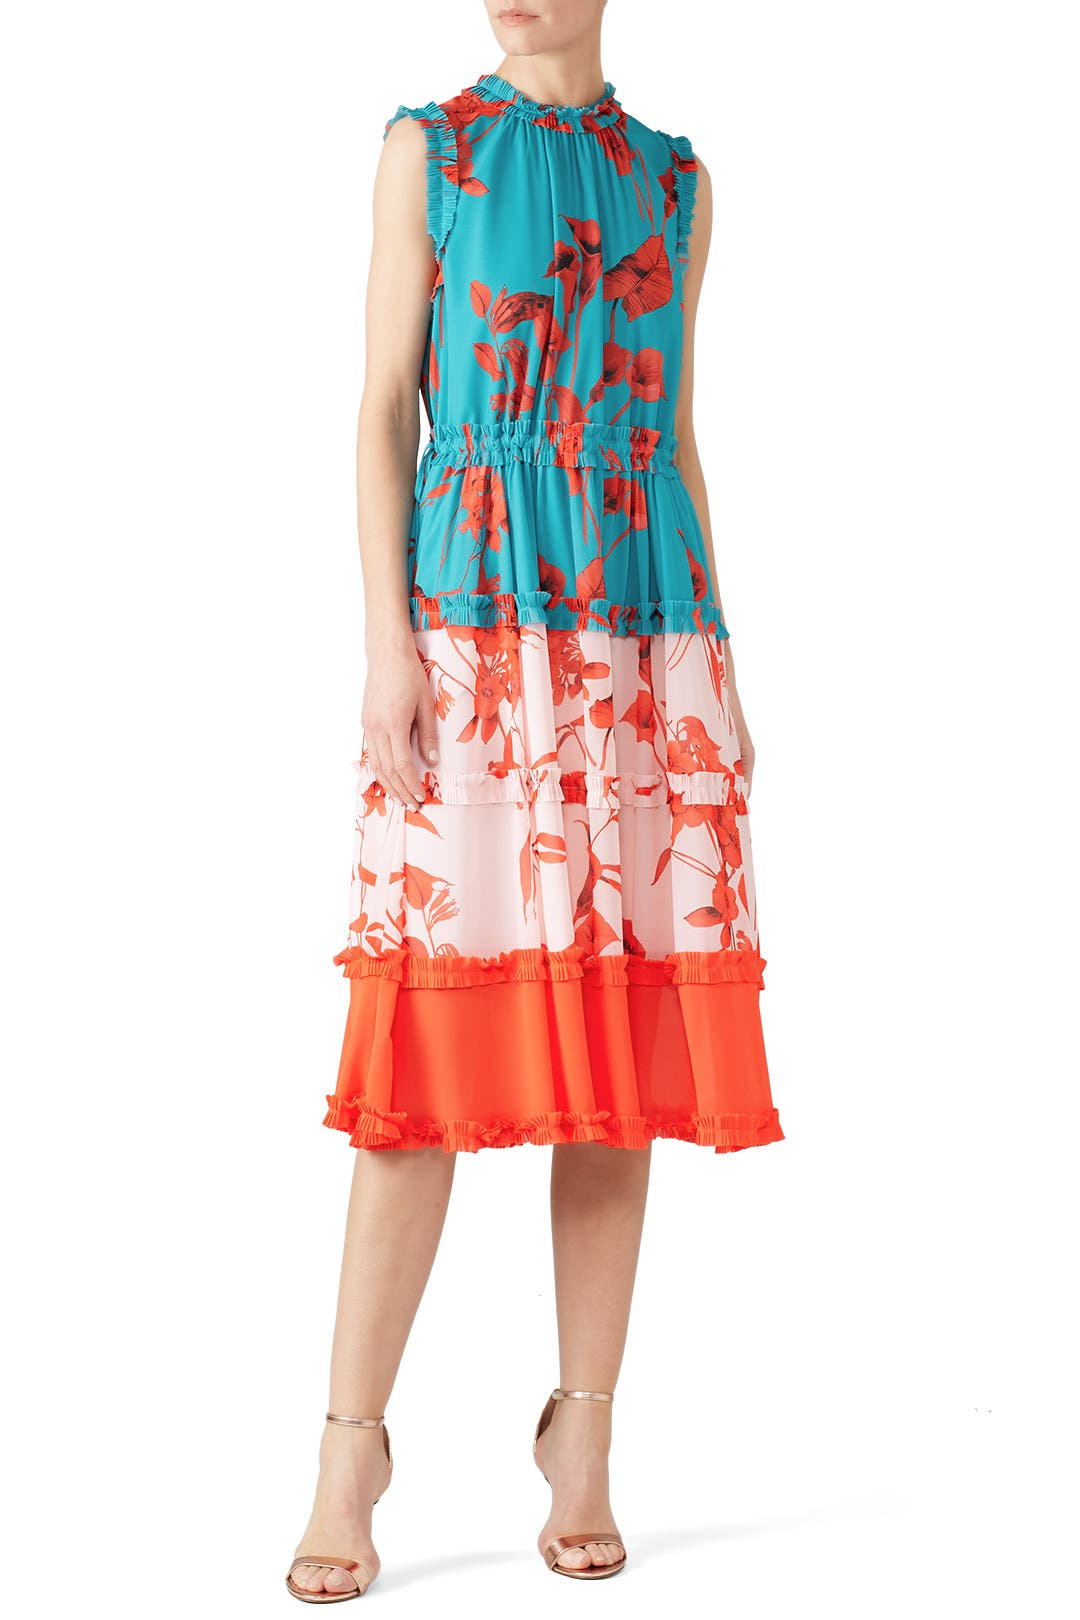 ffd4cad9da Camelis Dress by Ted Baker London for $70 - $80 | Rent the Runway